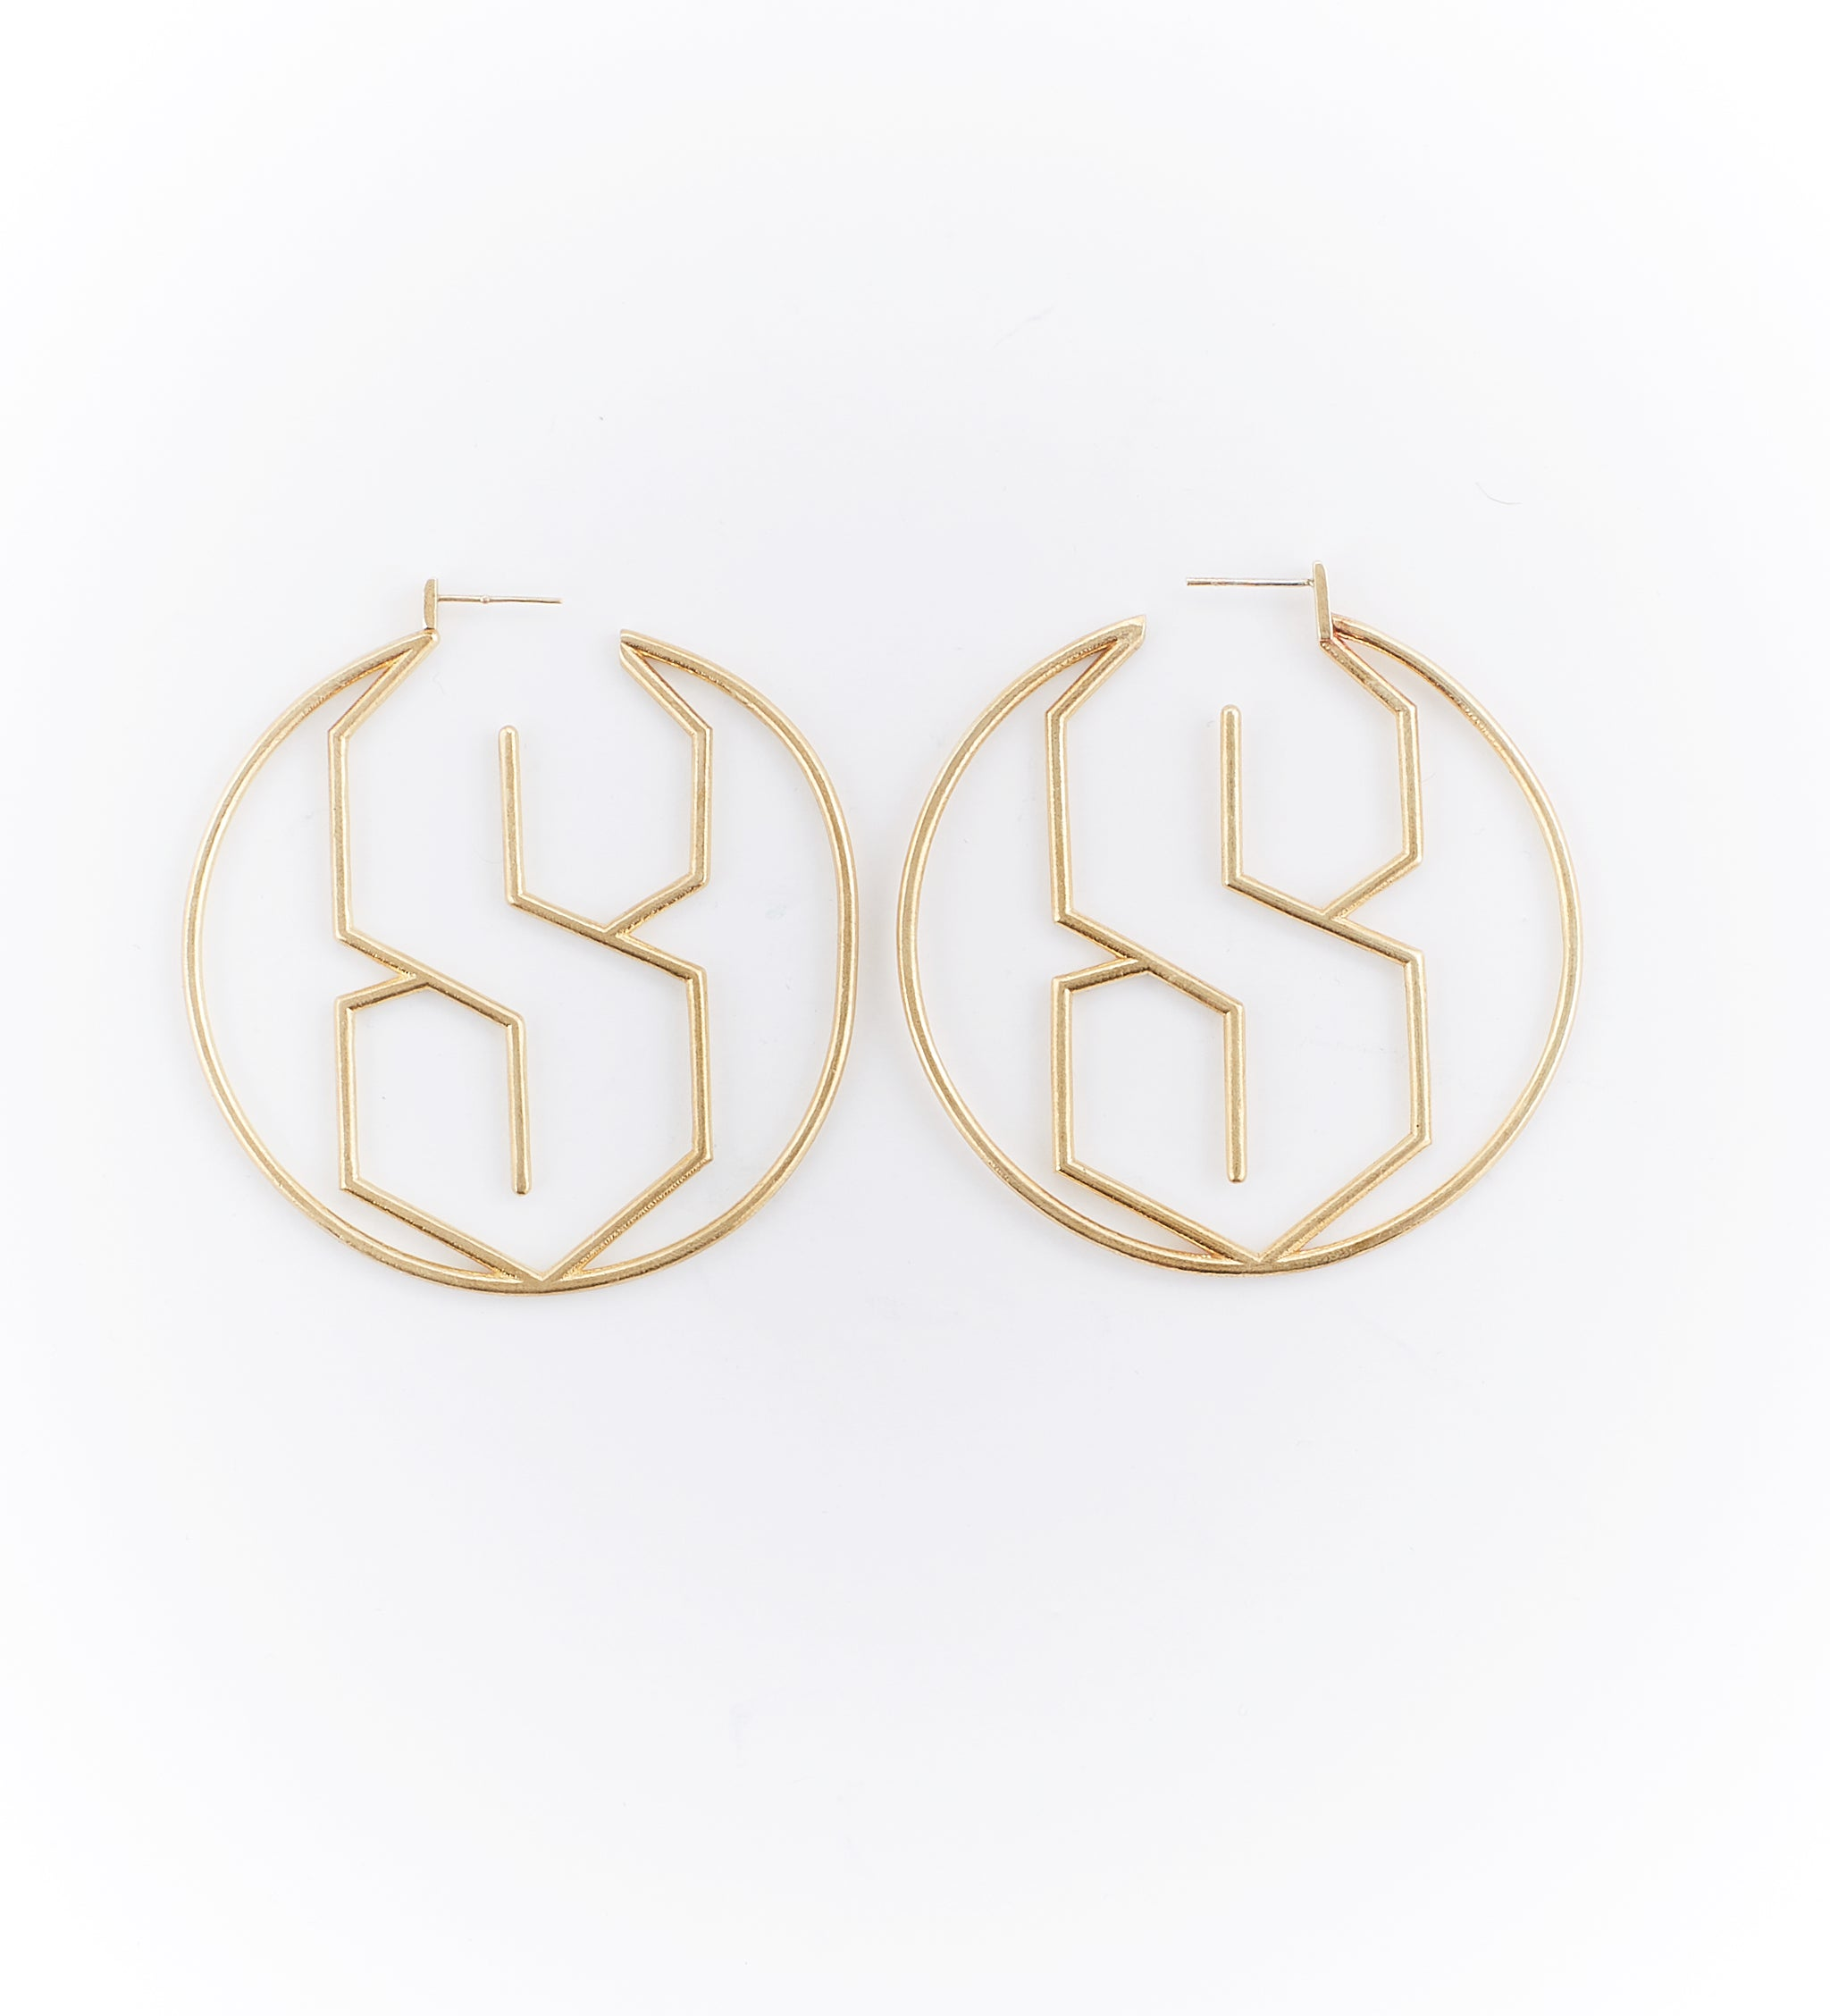 MMNYC.Studio's S Hoop Earrings